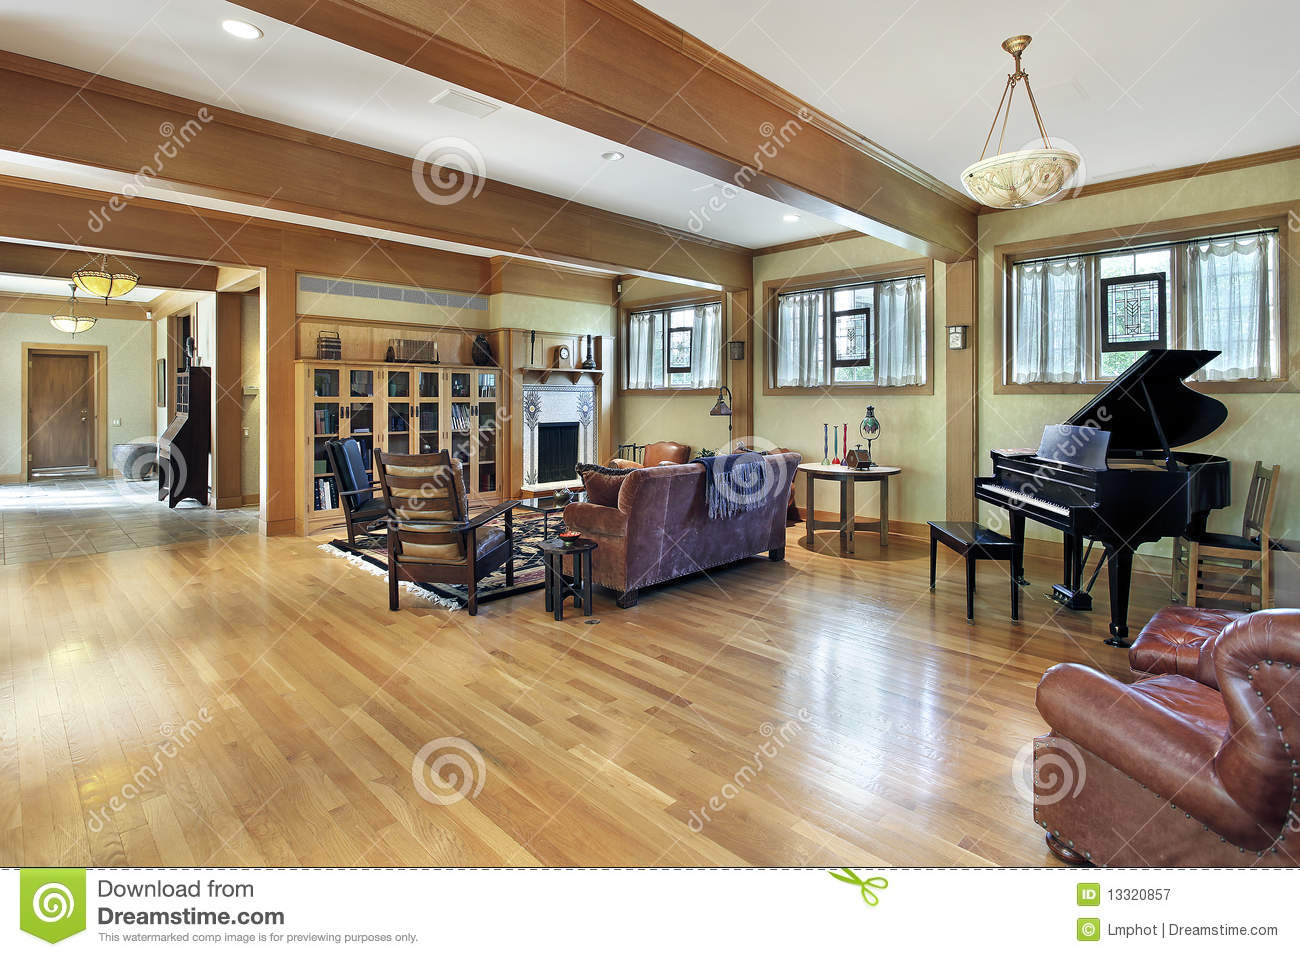 Living room with ceiling beams stock image image of - Living room ceiling beams ...